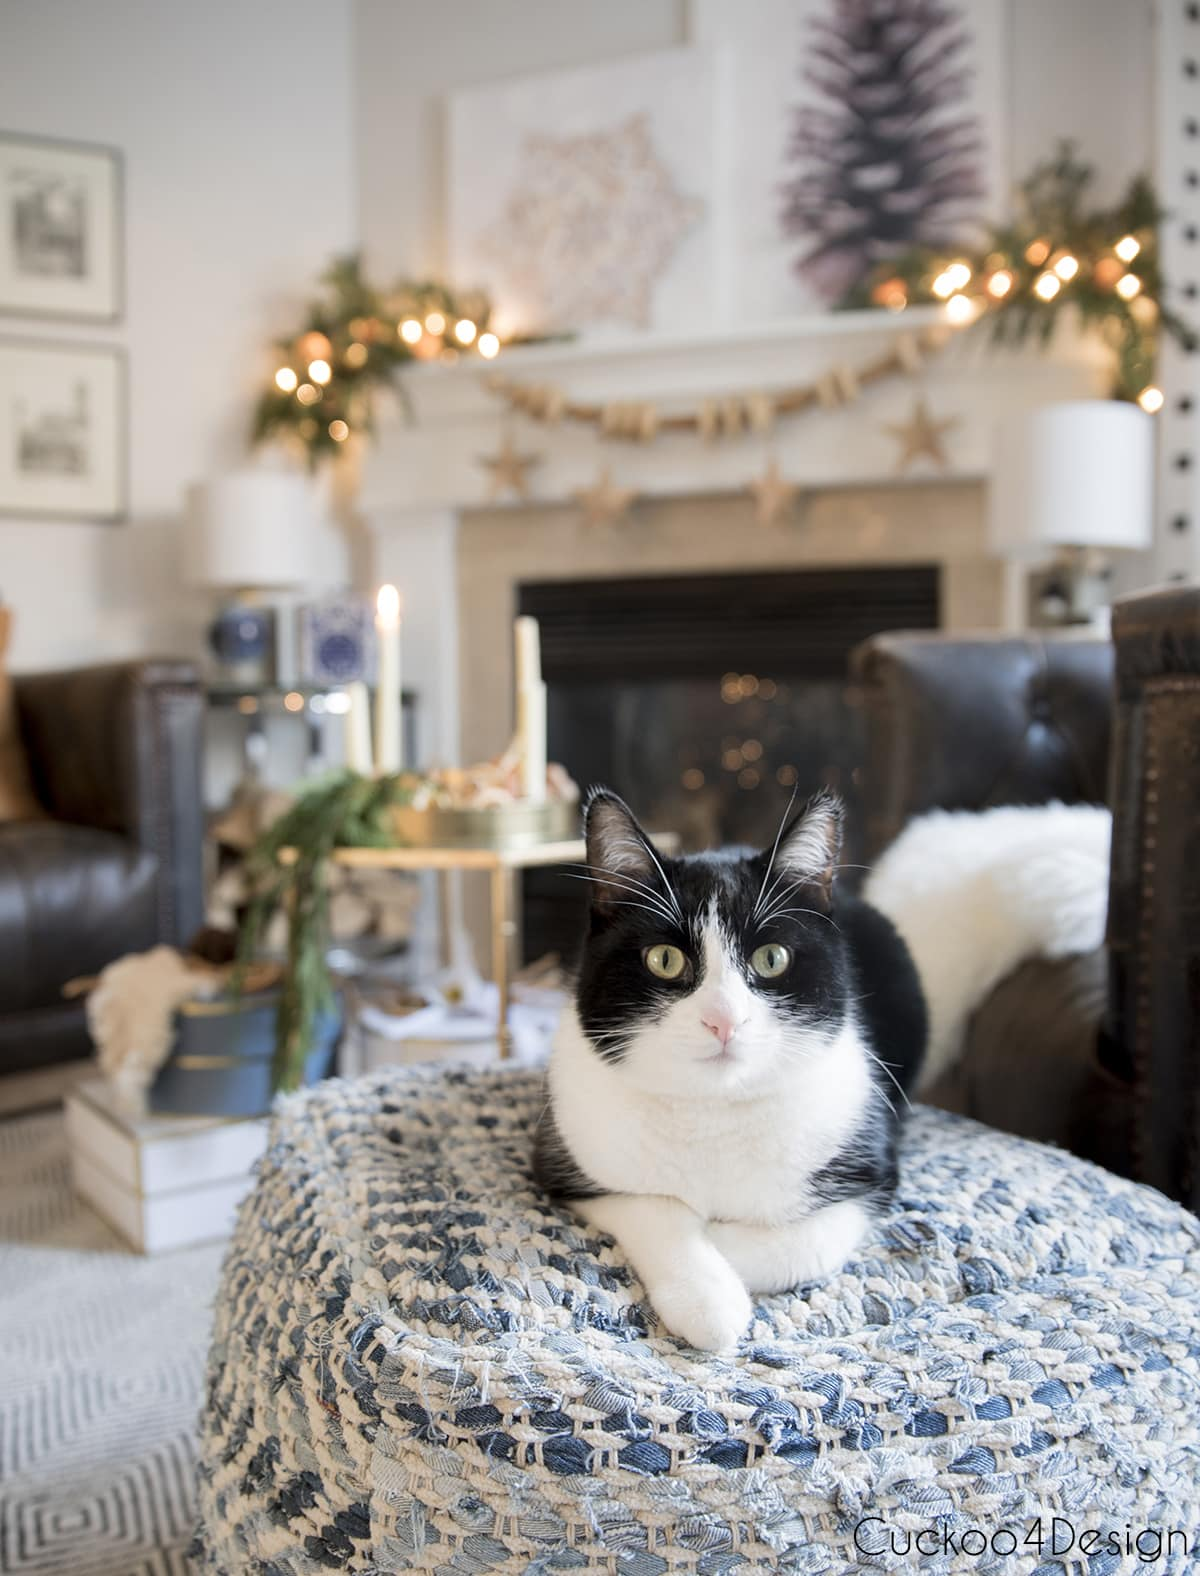 tuxedo sitting in front of fireplace with neutral and natural decor